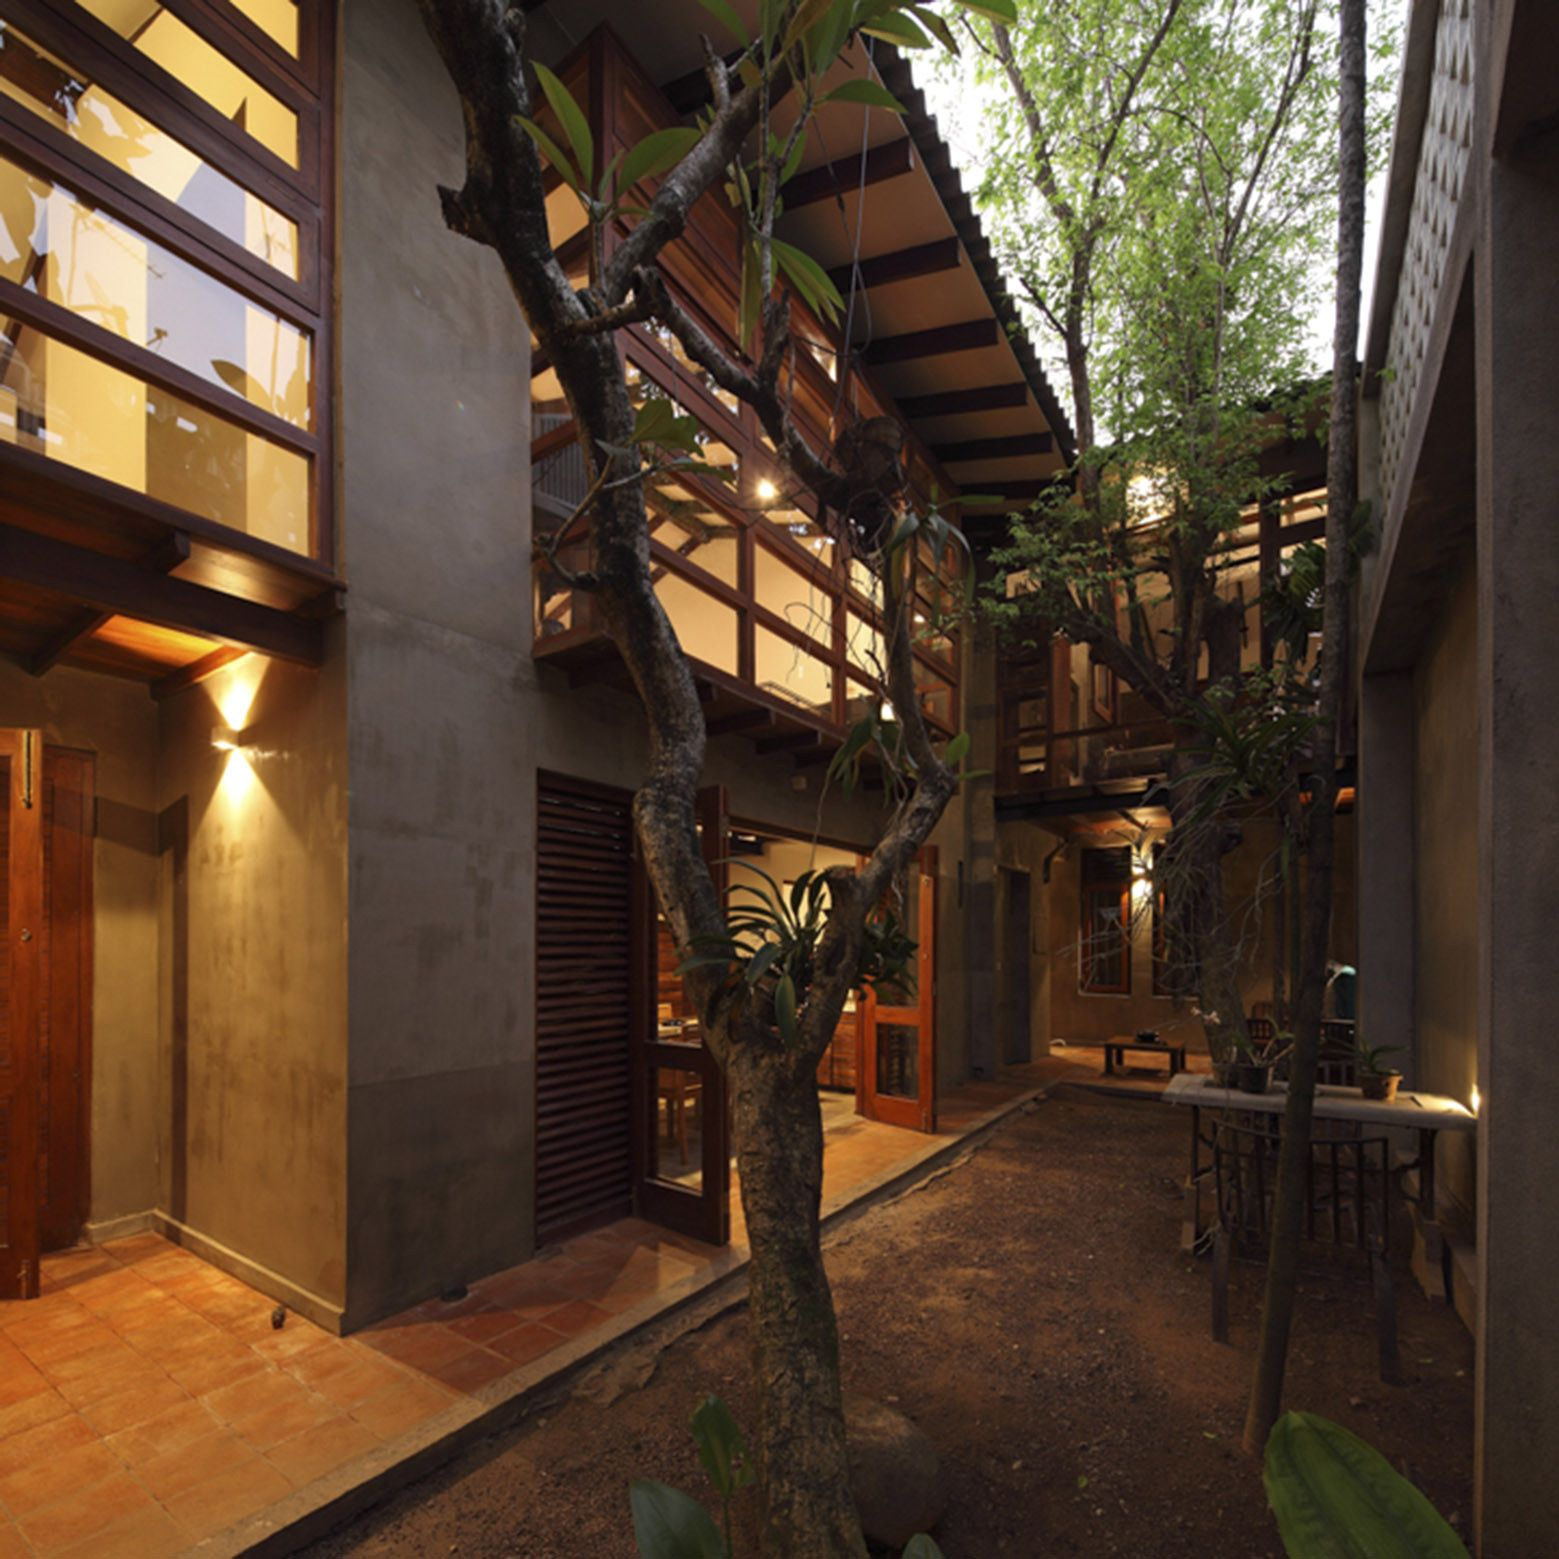 Casa Nugegoda  / Chinthaka Wickramage associates